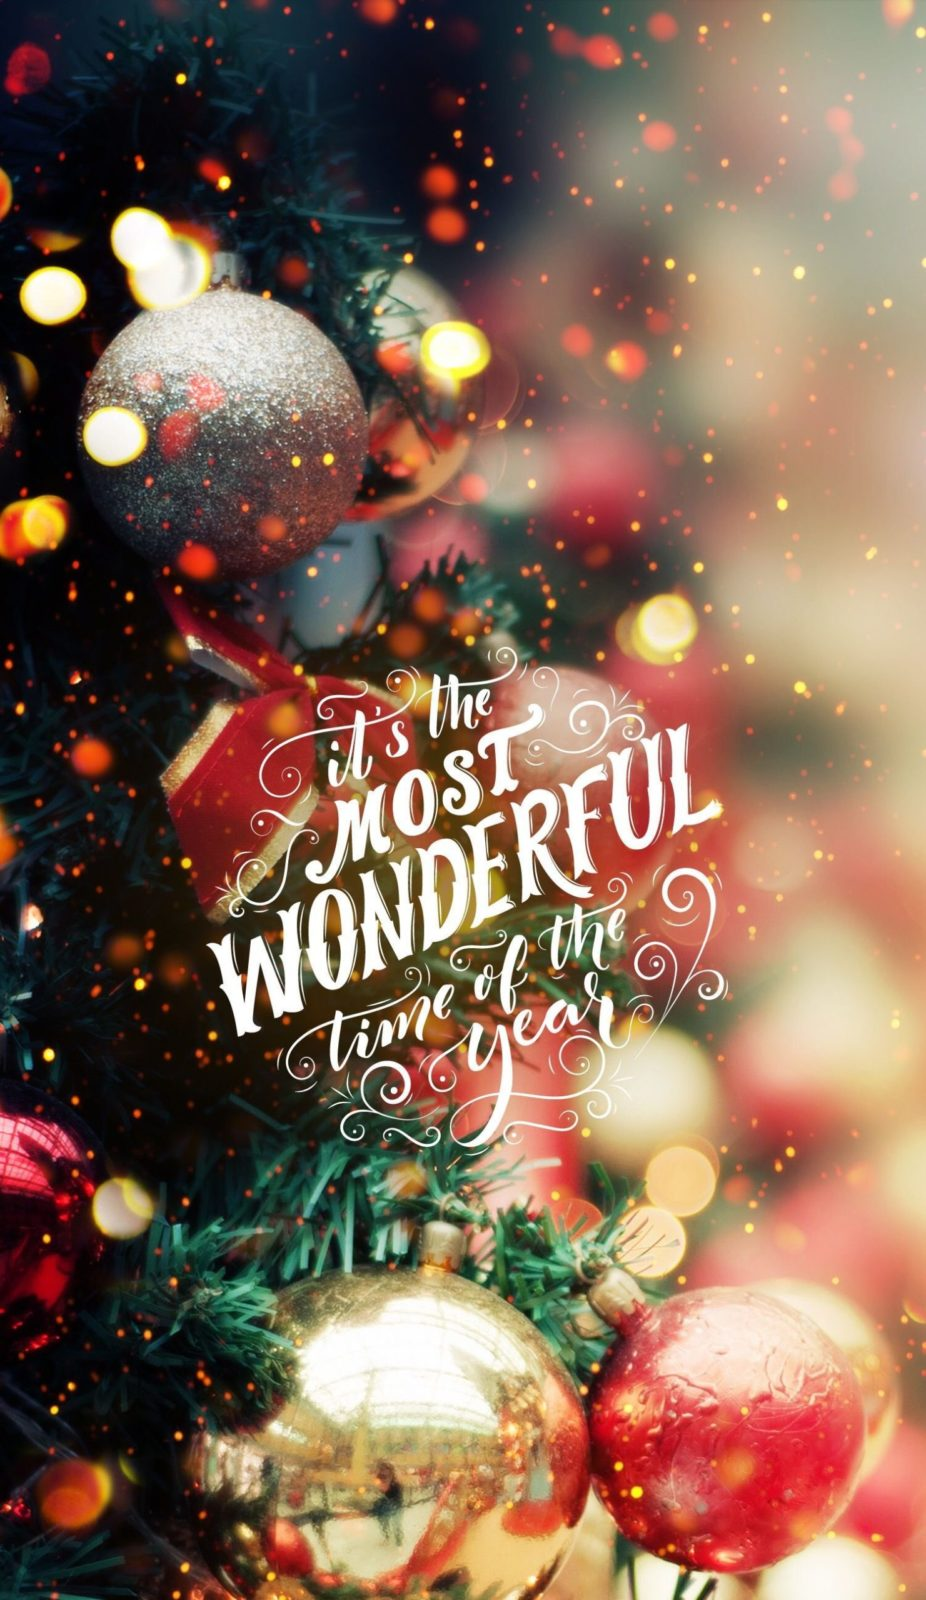 Christmas images and wallpapers for android, apple